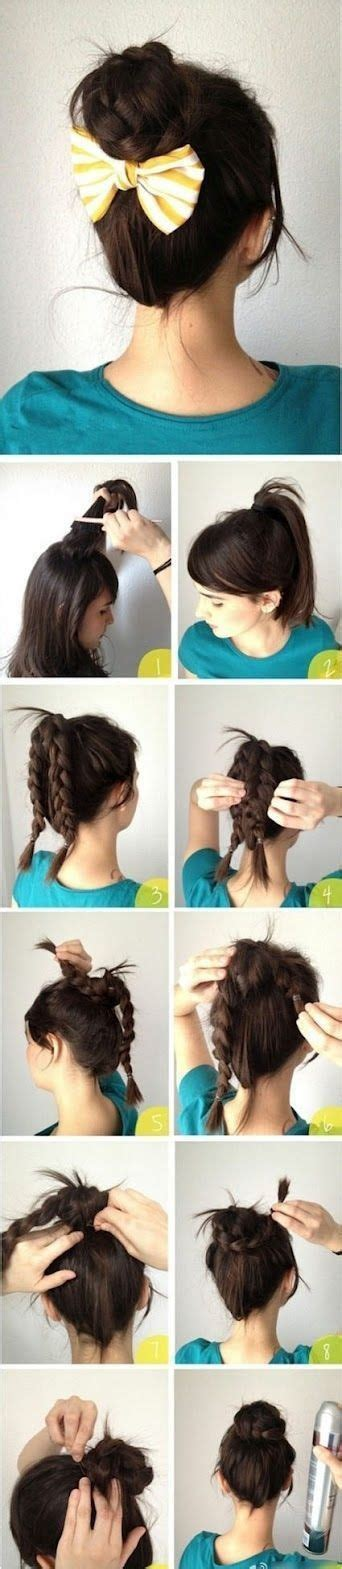 easy haircuts you can do at home 16 easy and creative hairstyles that you can replicate at home